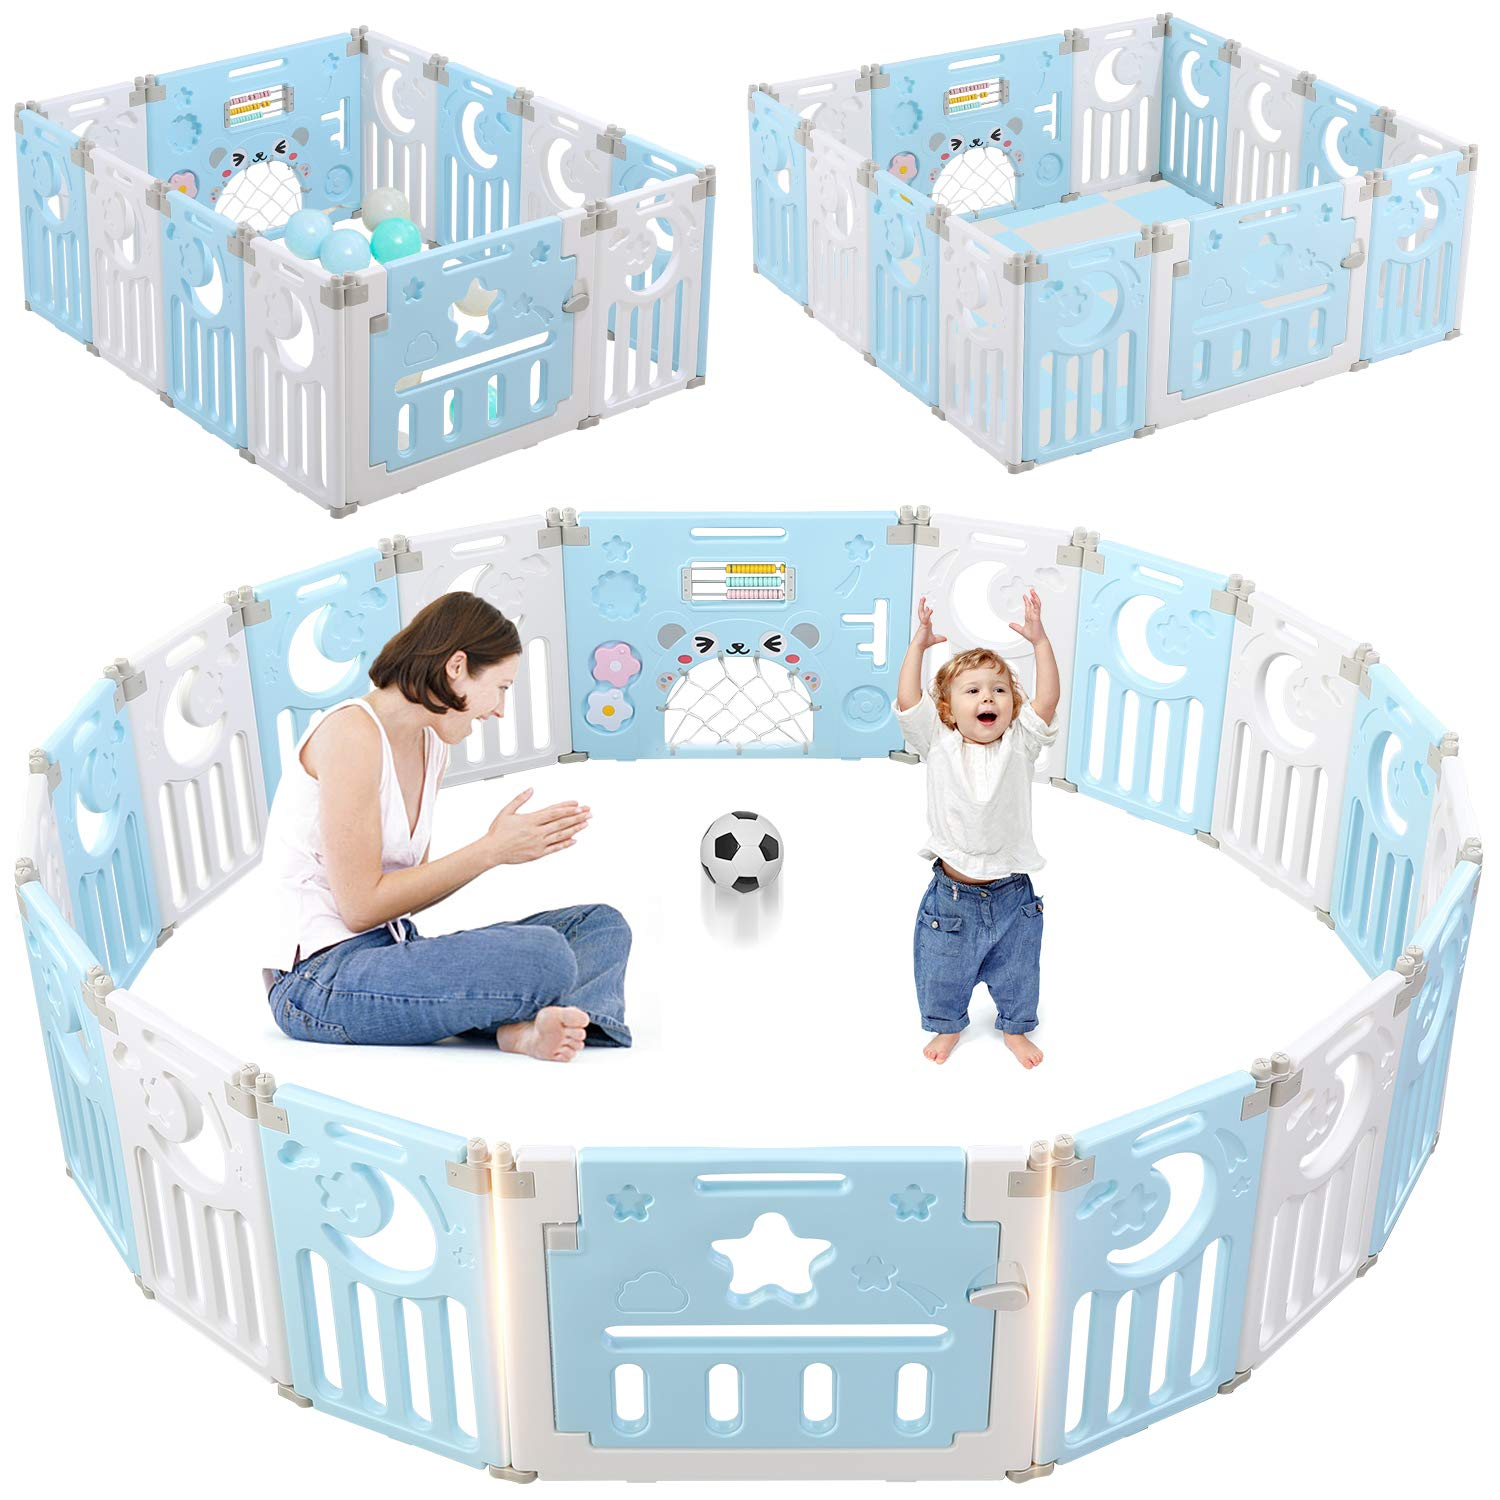 Baby Playpen, Dripex Upgrade New Clips Design Foldable Kids Activity Centre Safety Play Yard Extendable Baby Fence Play Pen with Gate(14-Panel, Blue + White)